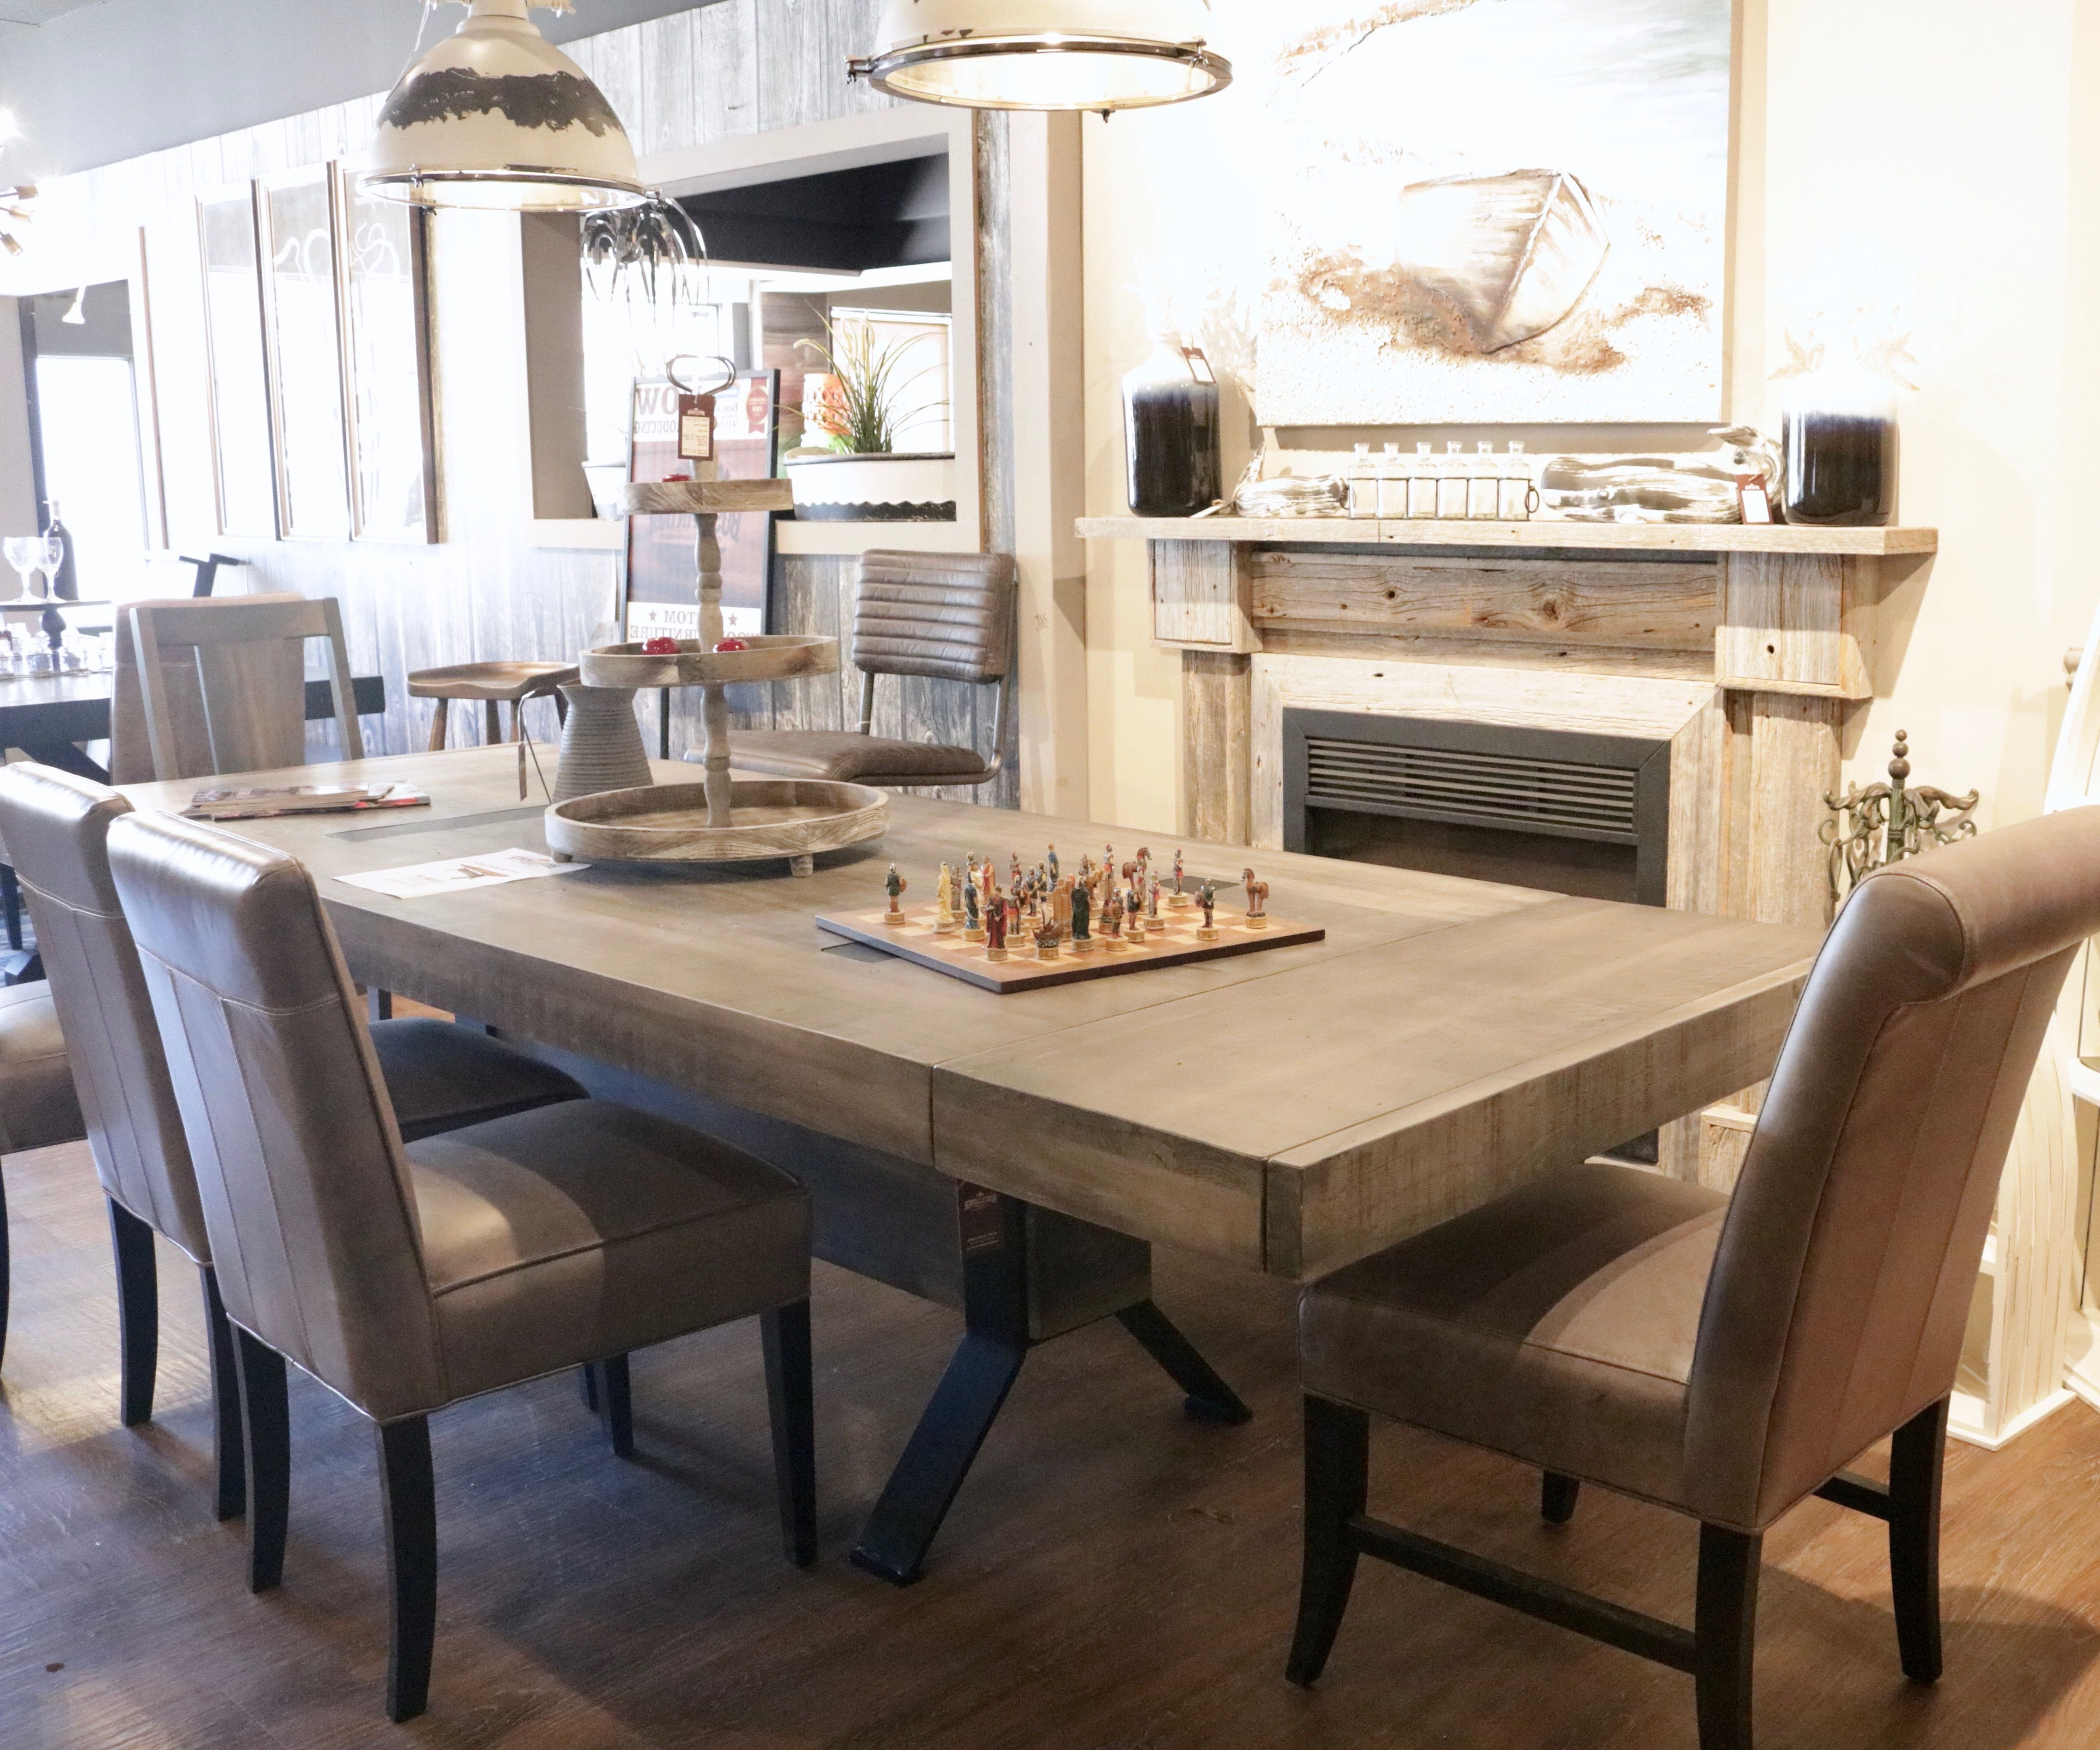 Introducing One Of Our Boss Vintage Custom Wood Dining Table